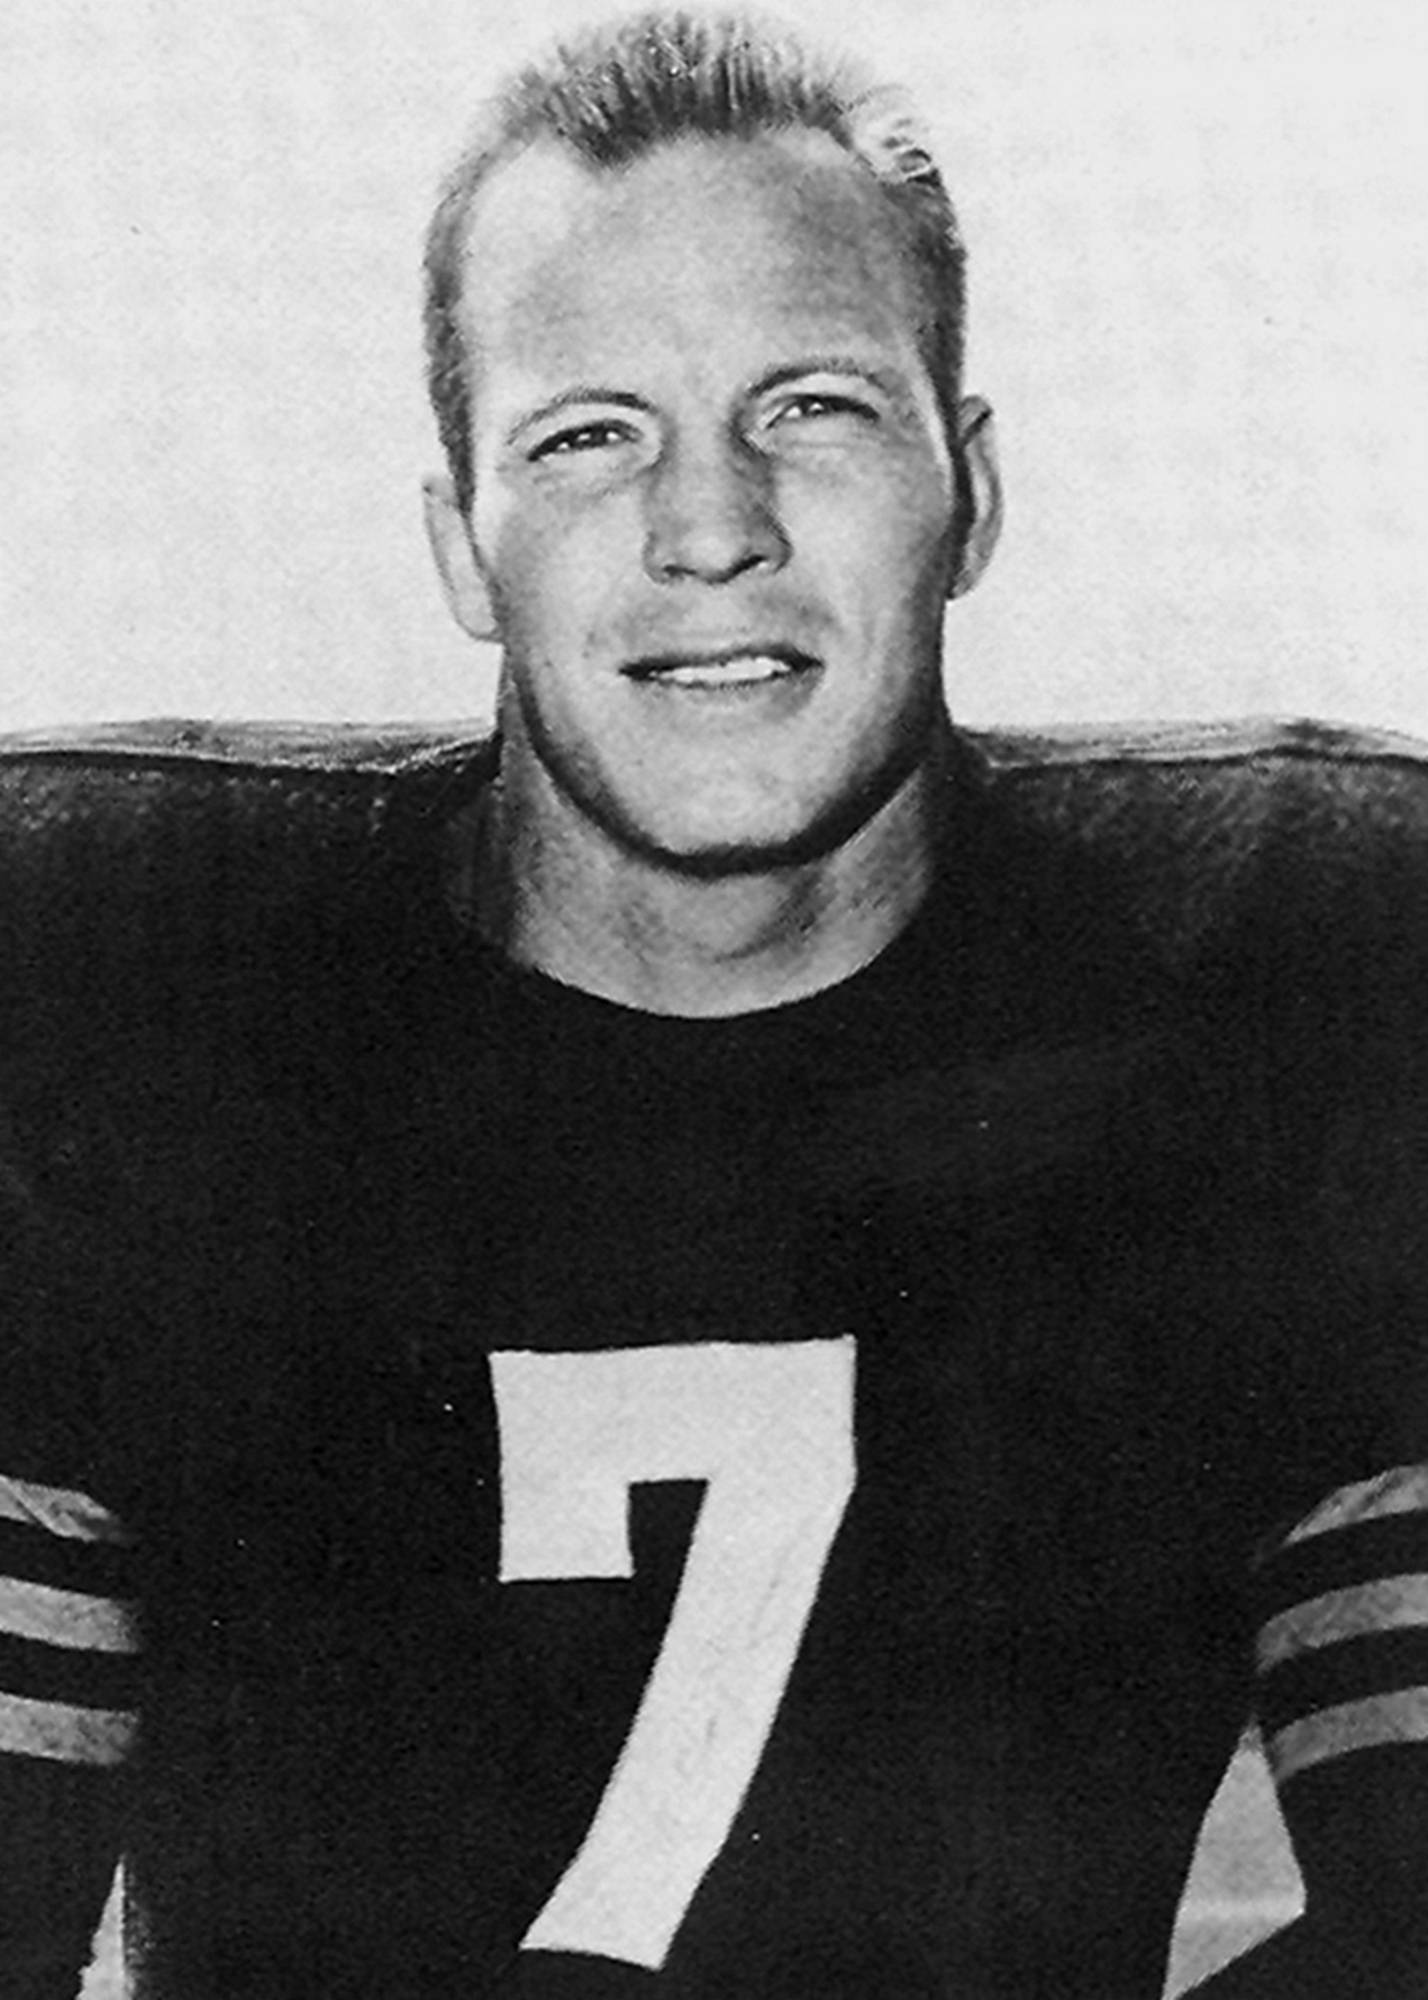 Defensive end Ed Sprinkle played for the Bears from 1944 to 1955 under coach George Halas.